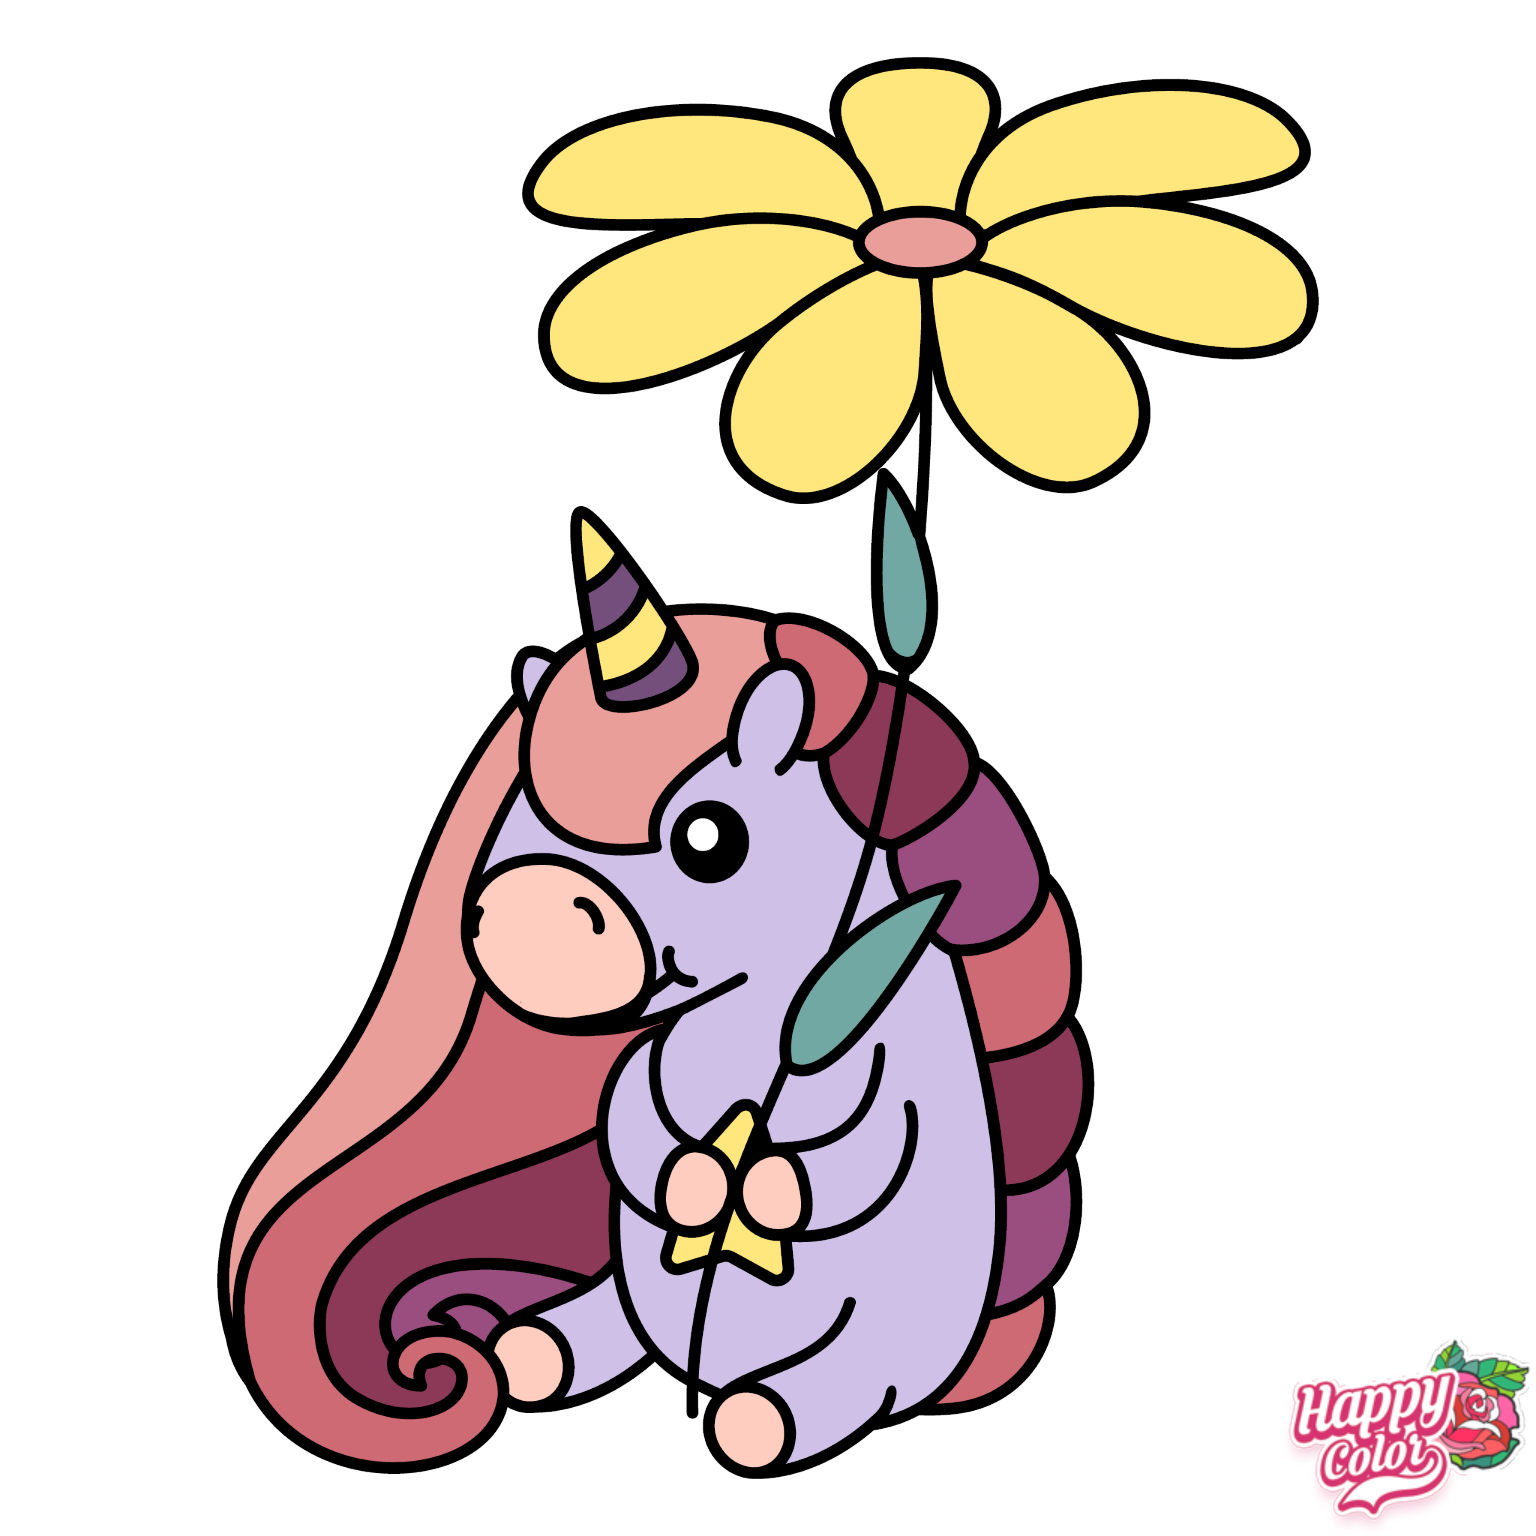 Tiny Unicorn Happy Colors Colorful Pictures Colouring Pics